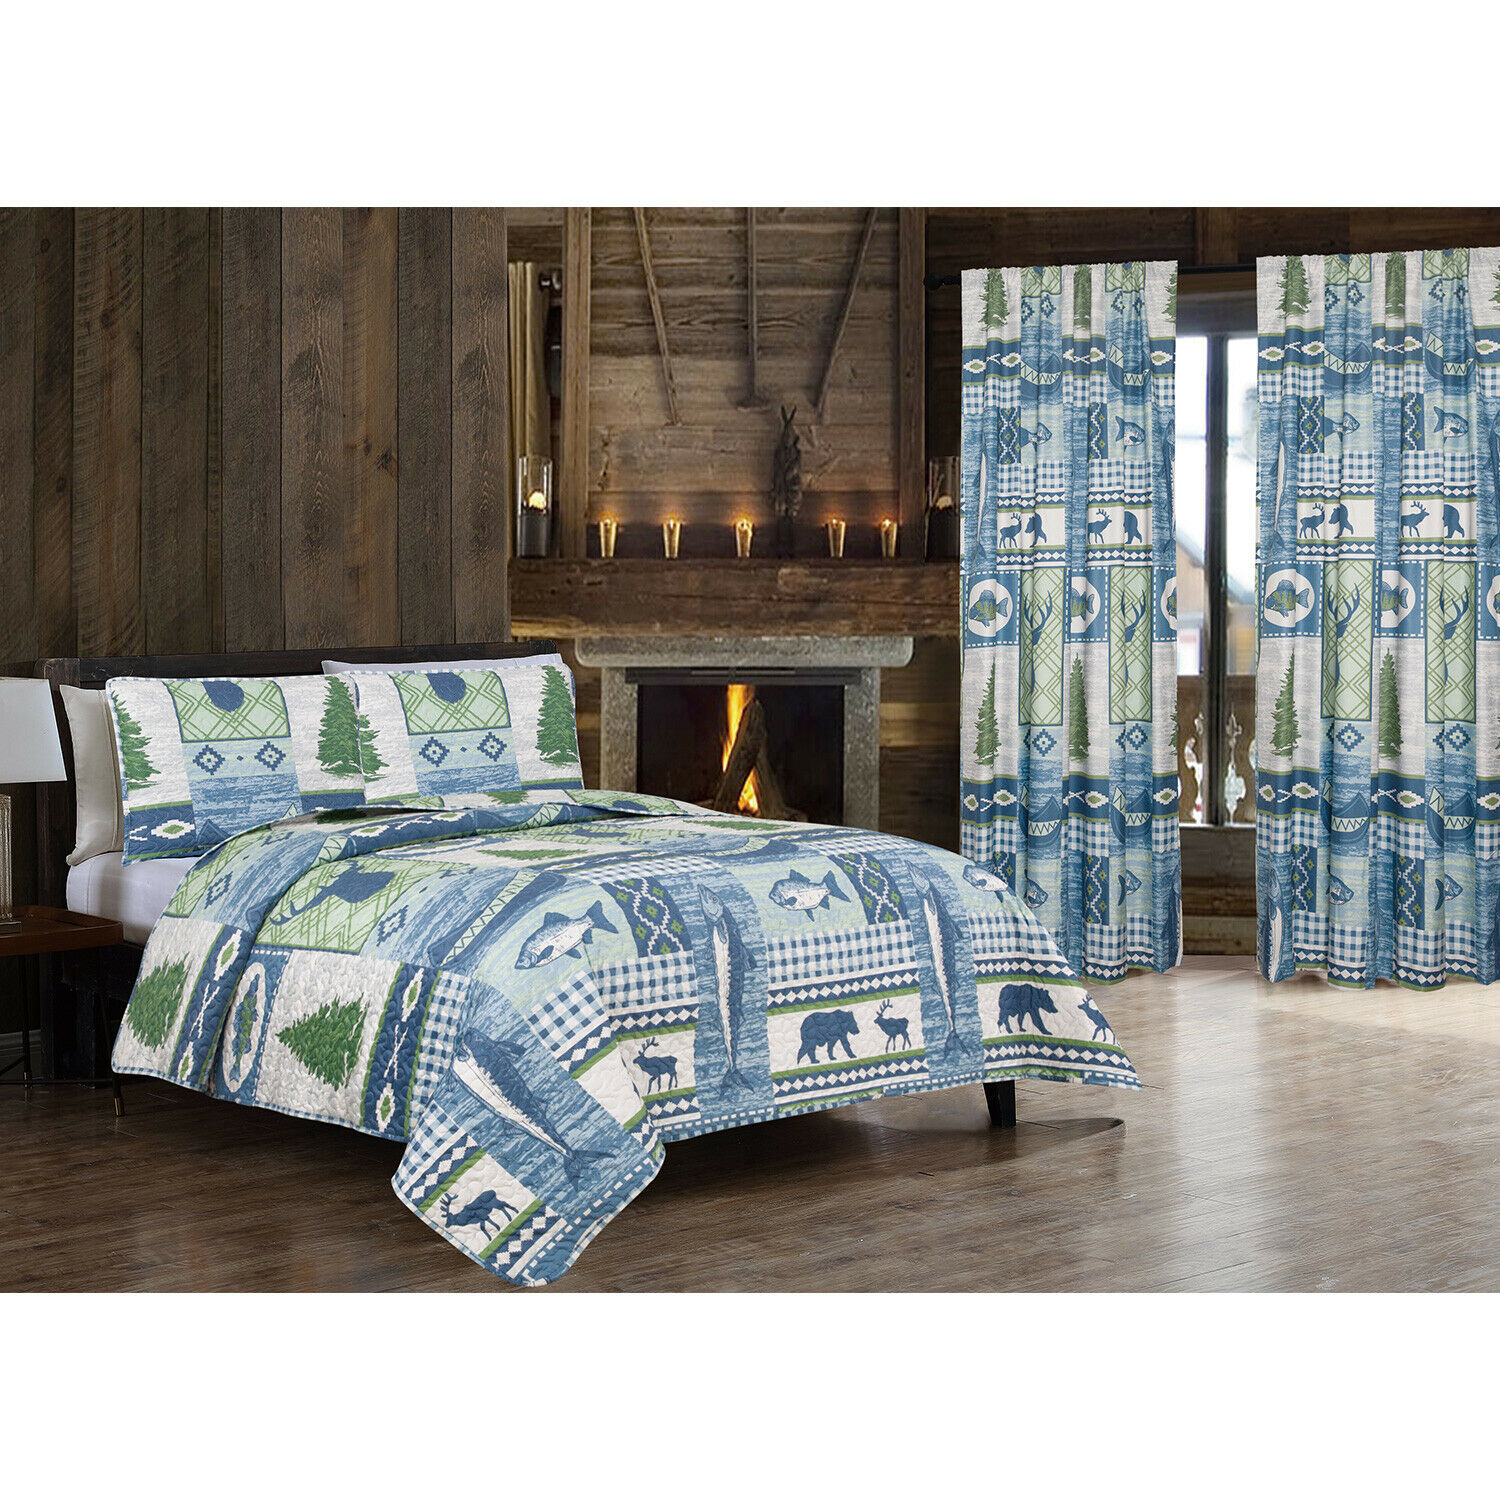 Twin, Full/Queen or King Lakeside Quilt Set or Curtains Deer Fish, Blue Green Bedding